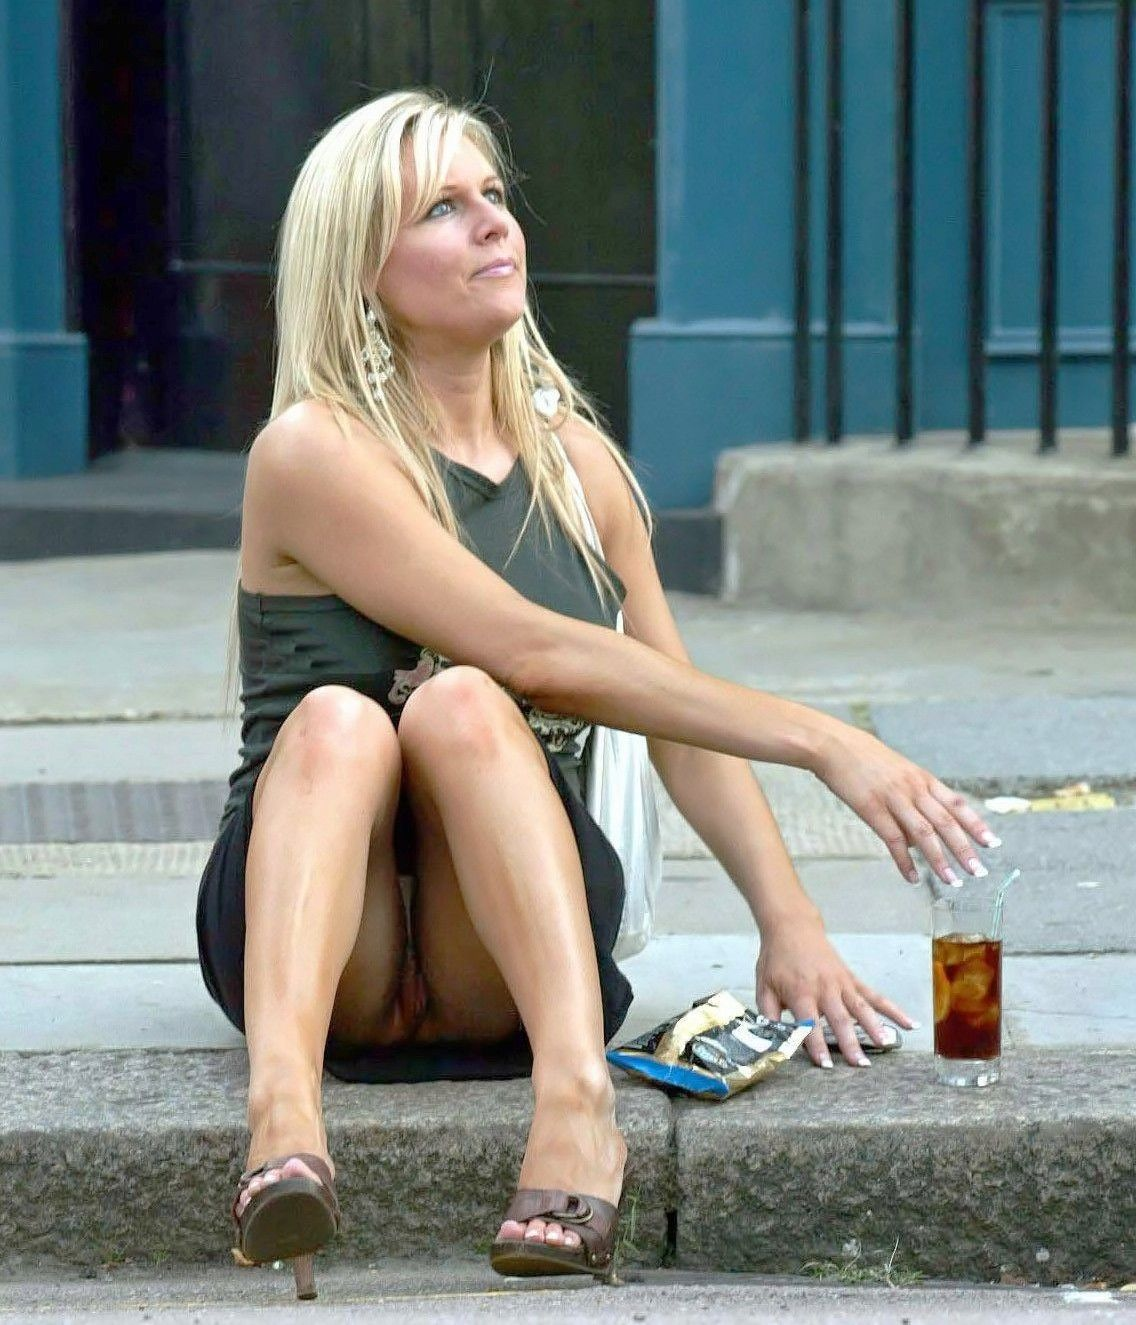 Sexy MILF was caught out of panties in a public place during breakfast. Hot blonde cougar without panties in public